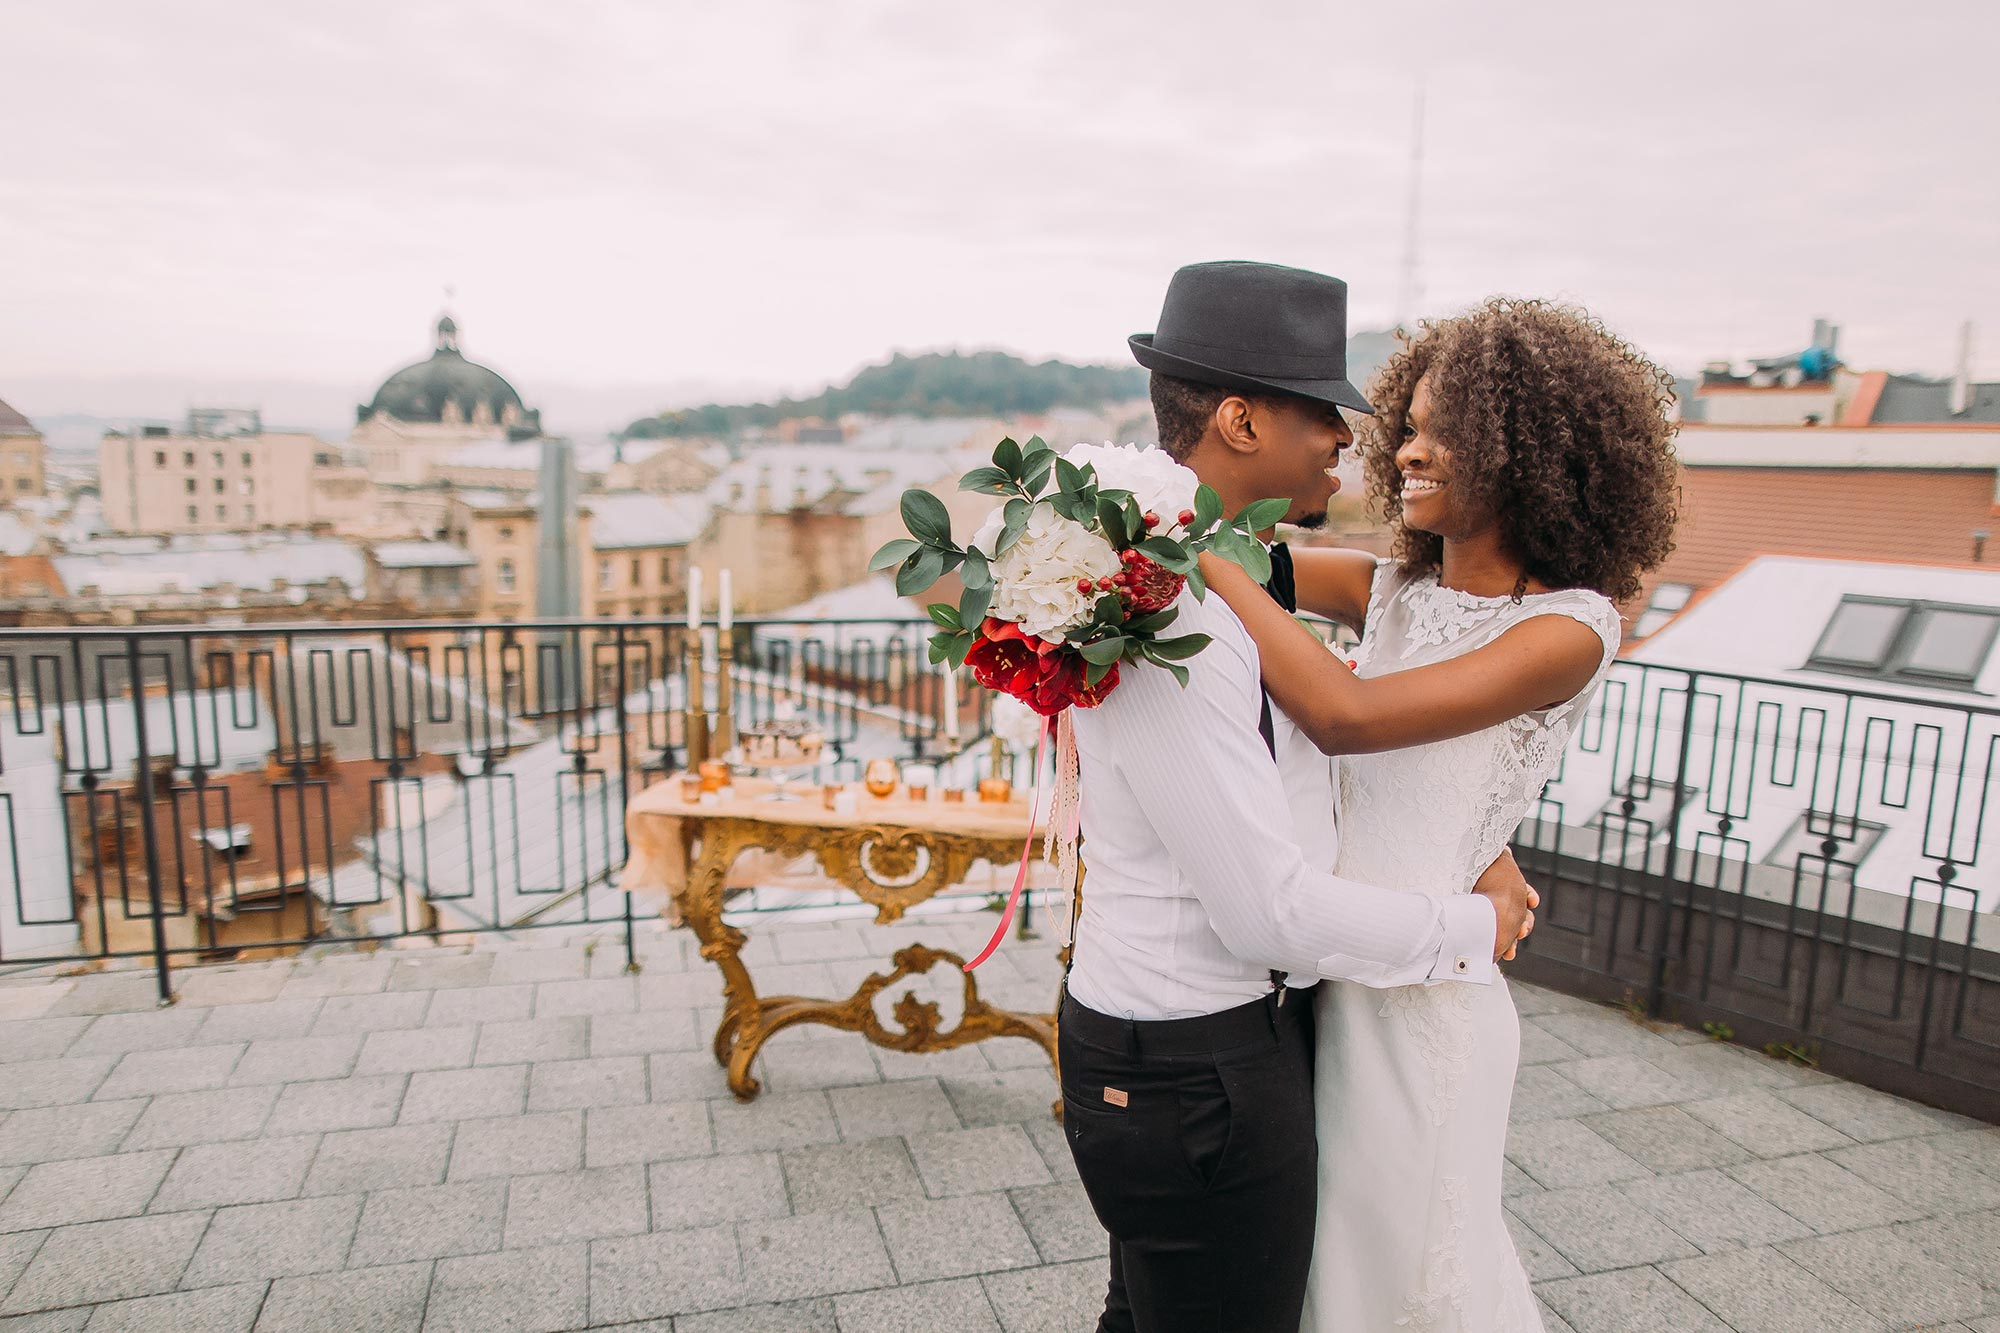 newlywed couple in an embrace on rooftop